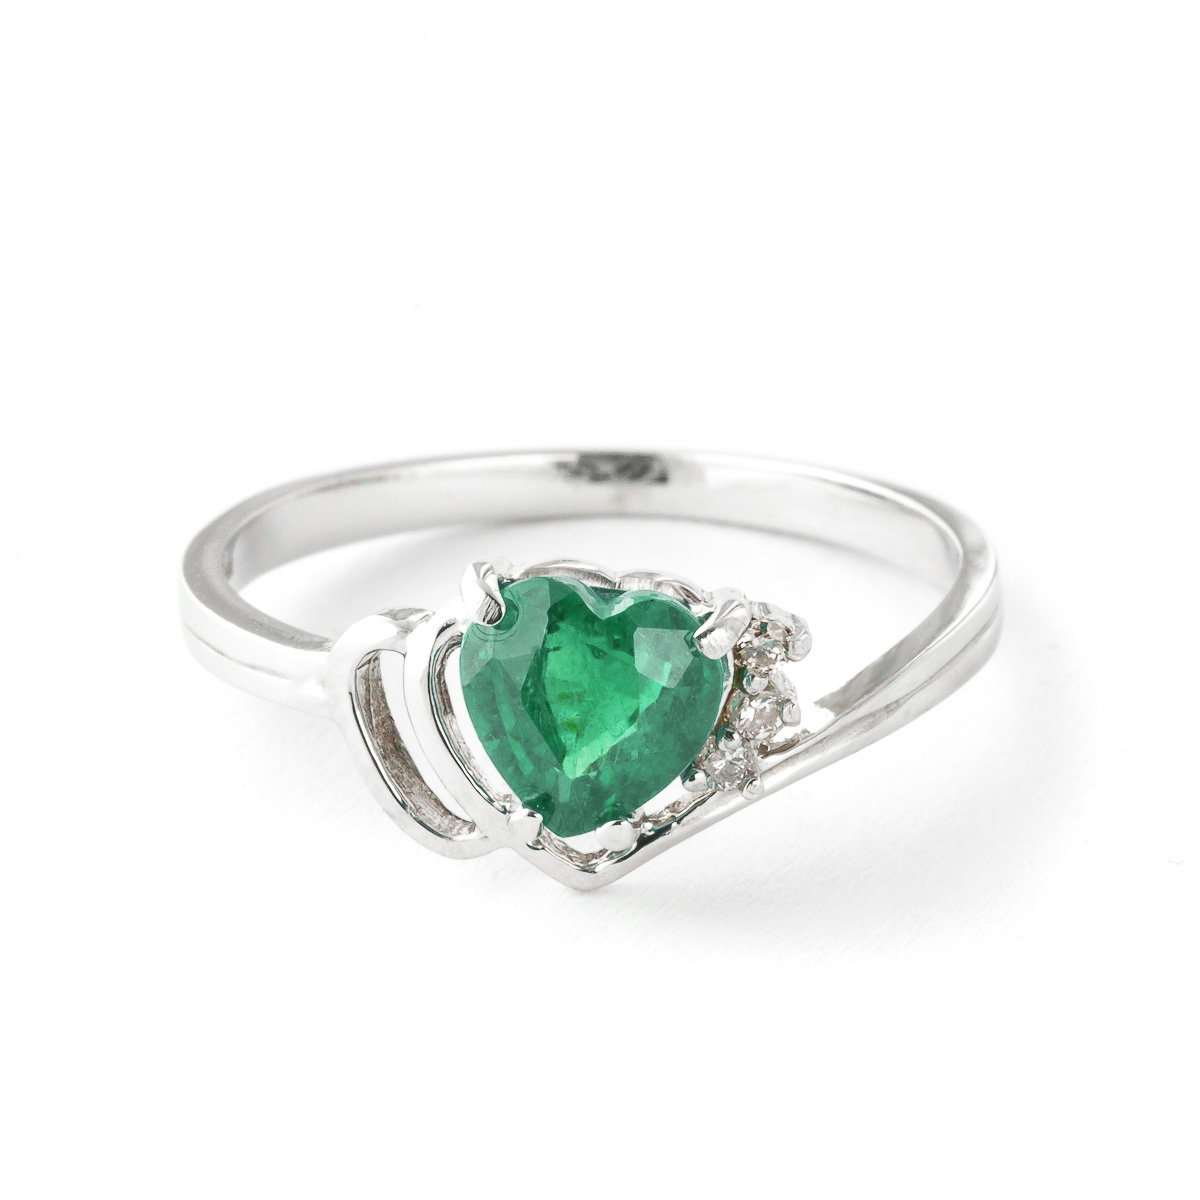 Emerald & Diamond Devotion Ring in Sterling Silver